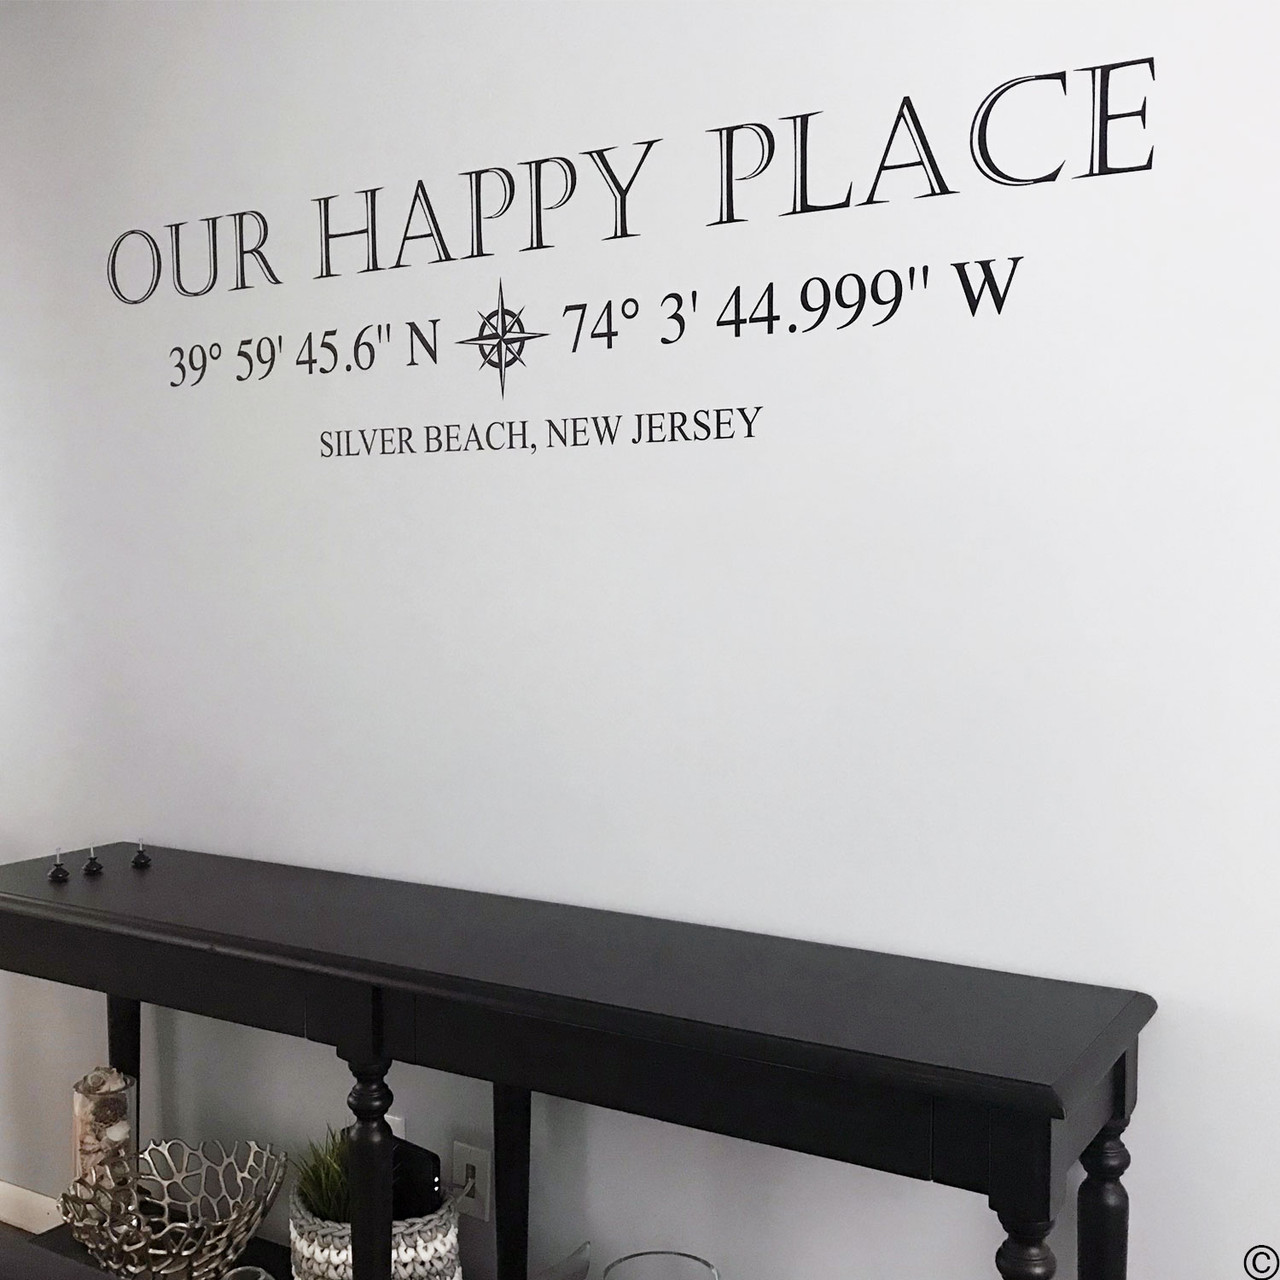 Customer photo of Our Happy Place with coordinates customized to Silver Beach, NJ.